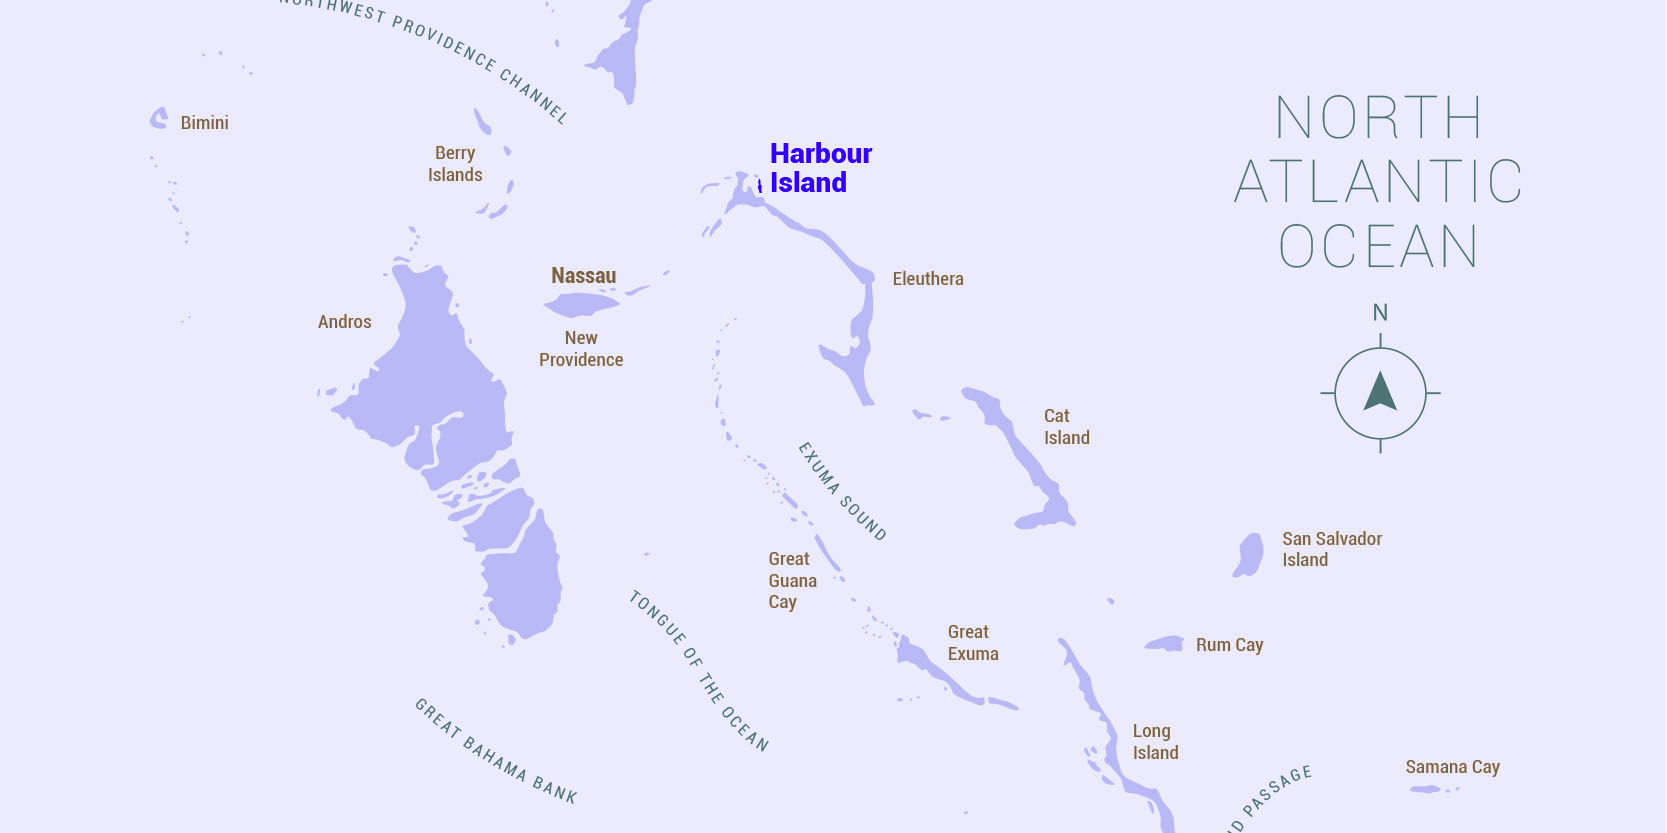 Bahamas-HarbourIsland-Fishing-Map.jpg